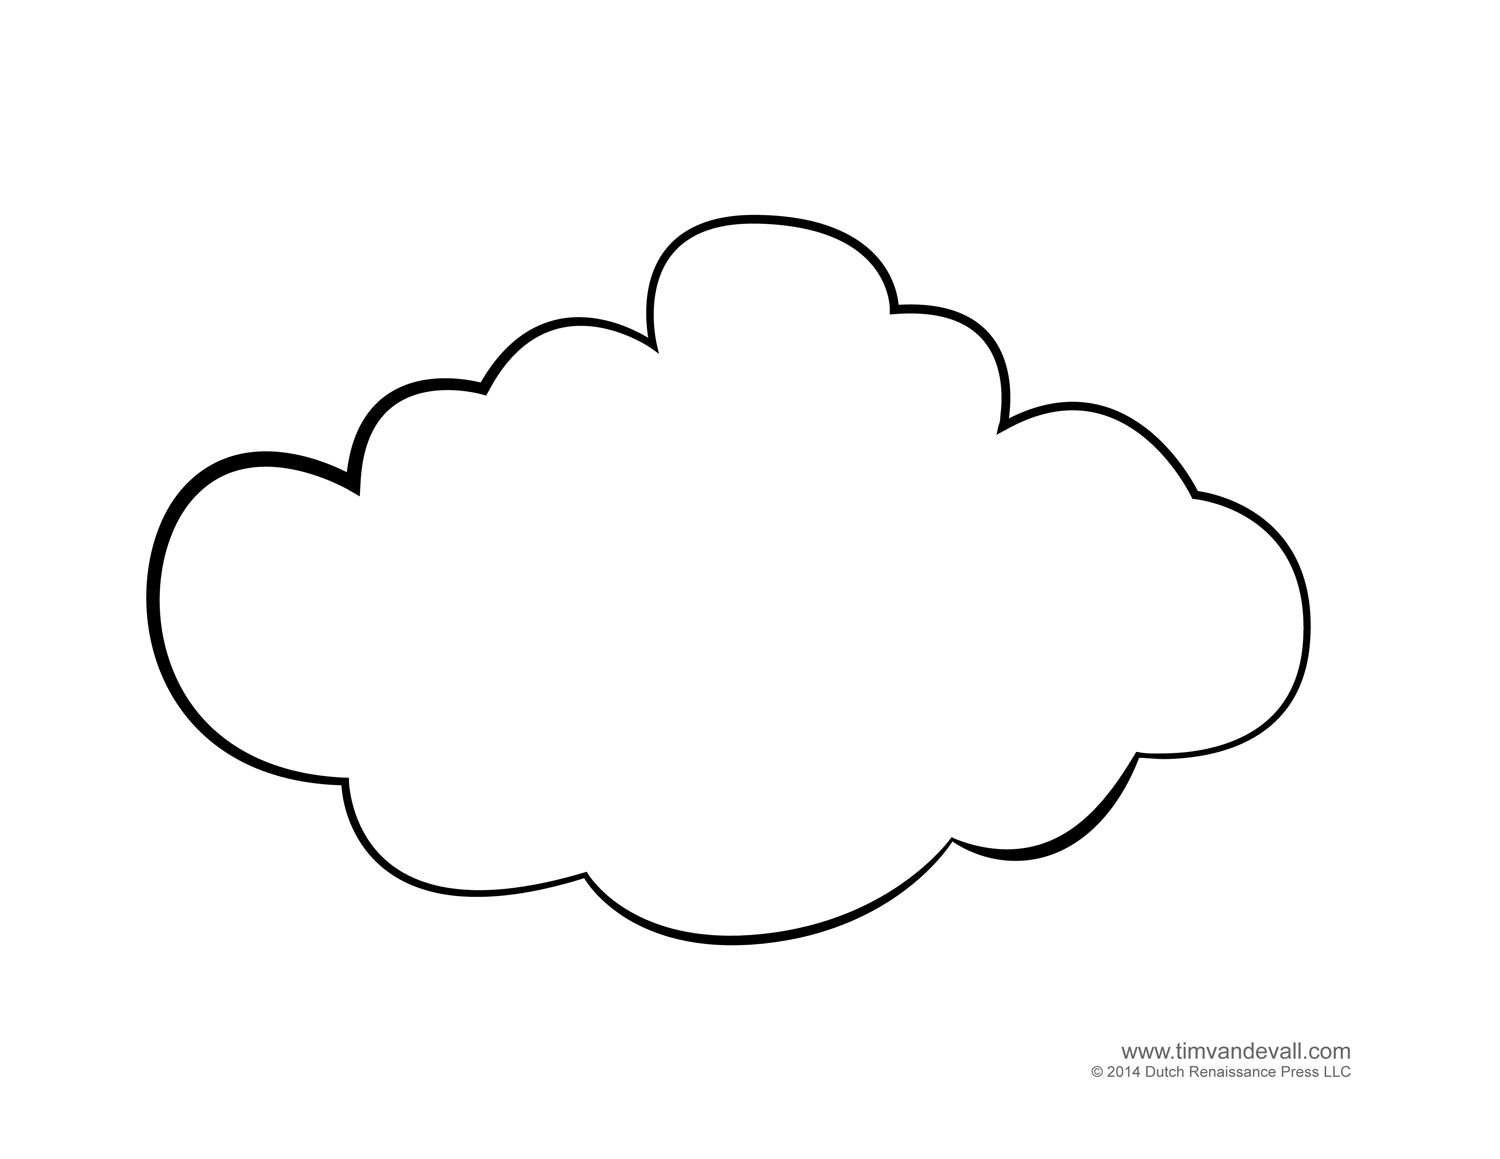 Ghayn غ Ghayma Cloud غيمة Coloring Pages Coloring Pages Inspirational Umbrella Coloring Page